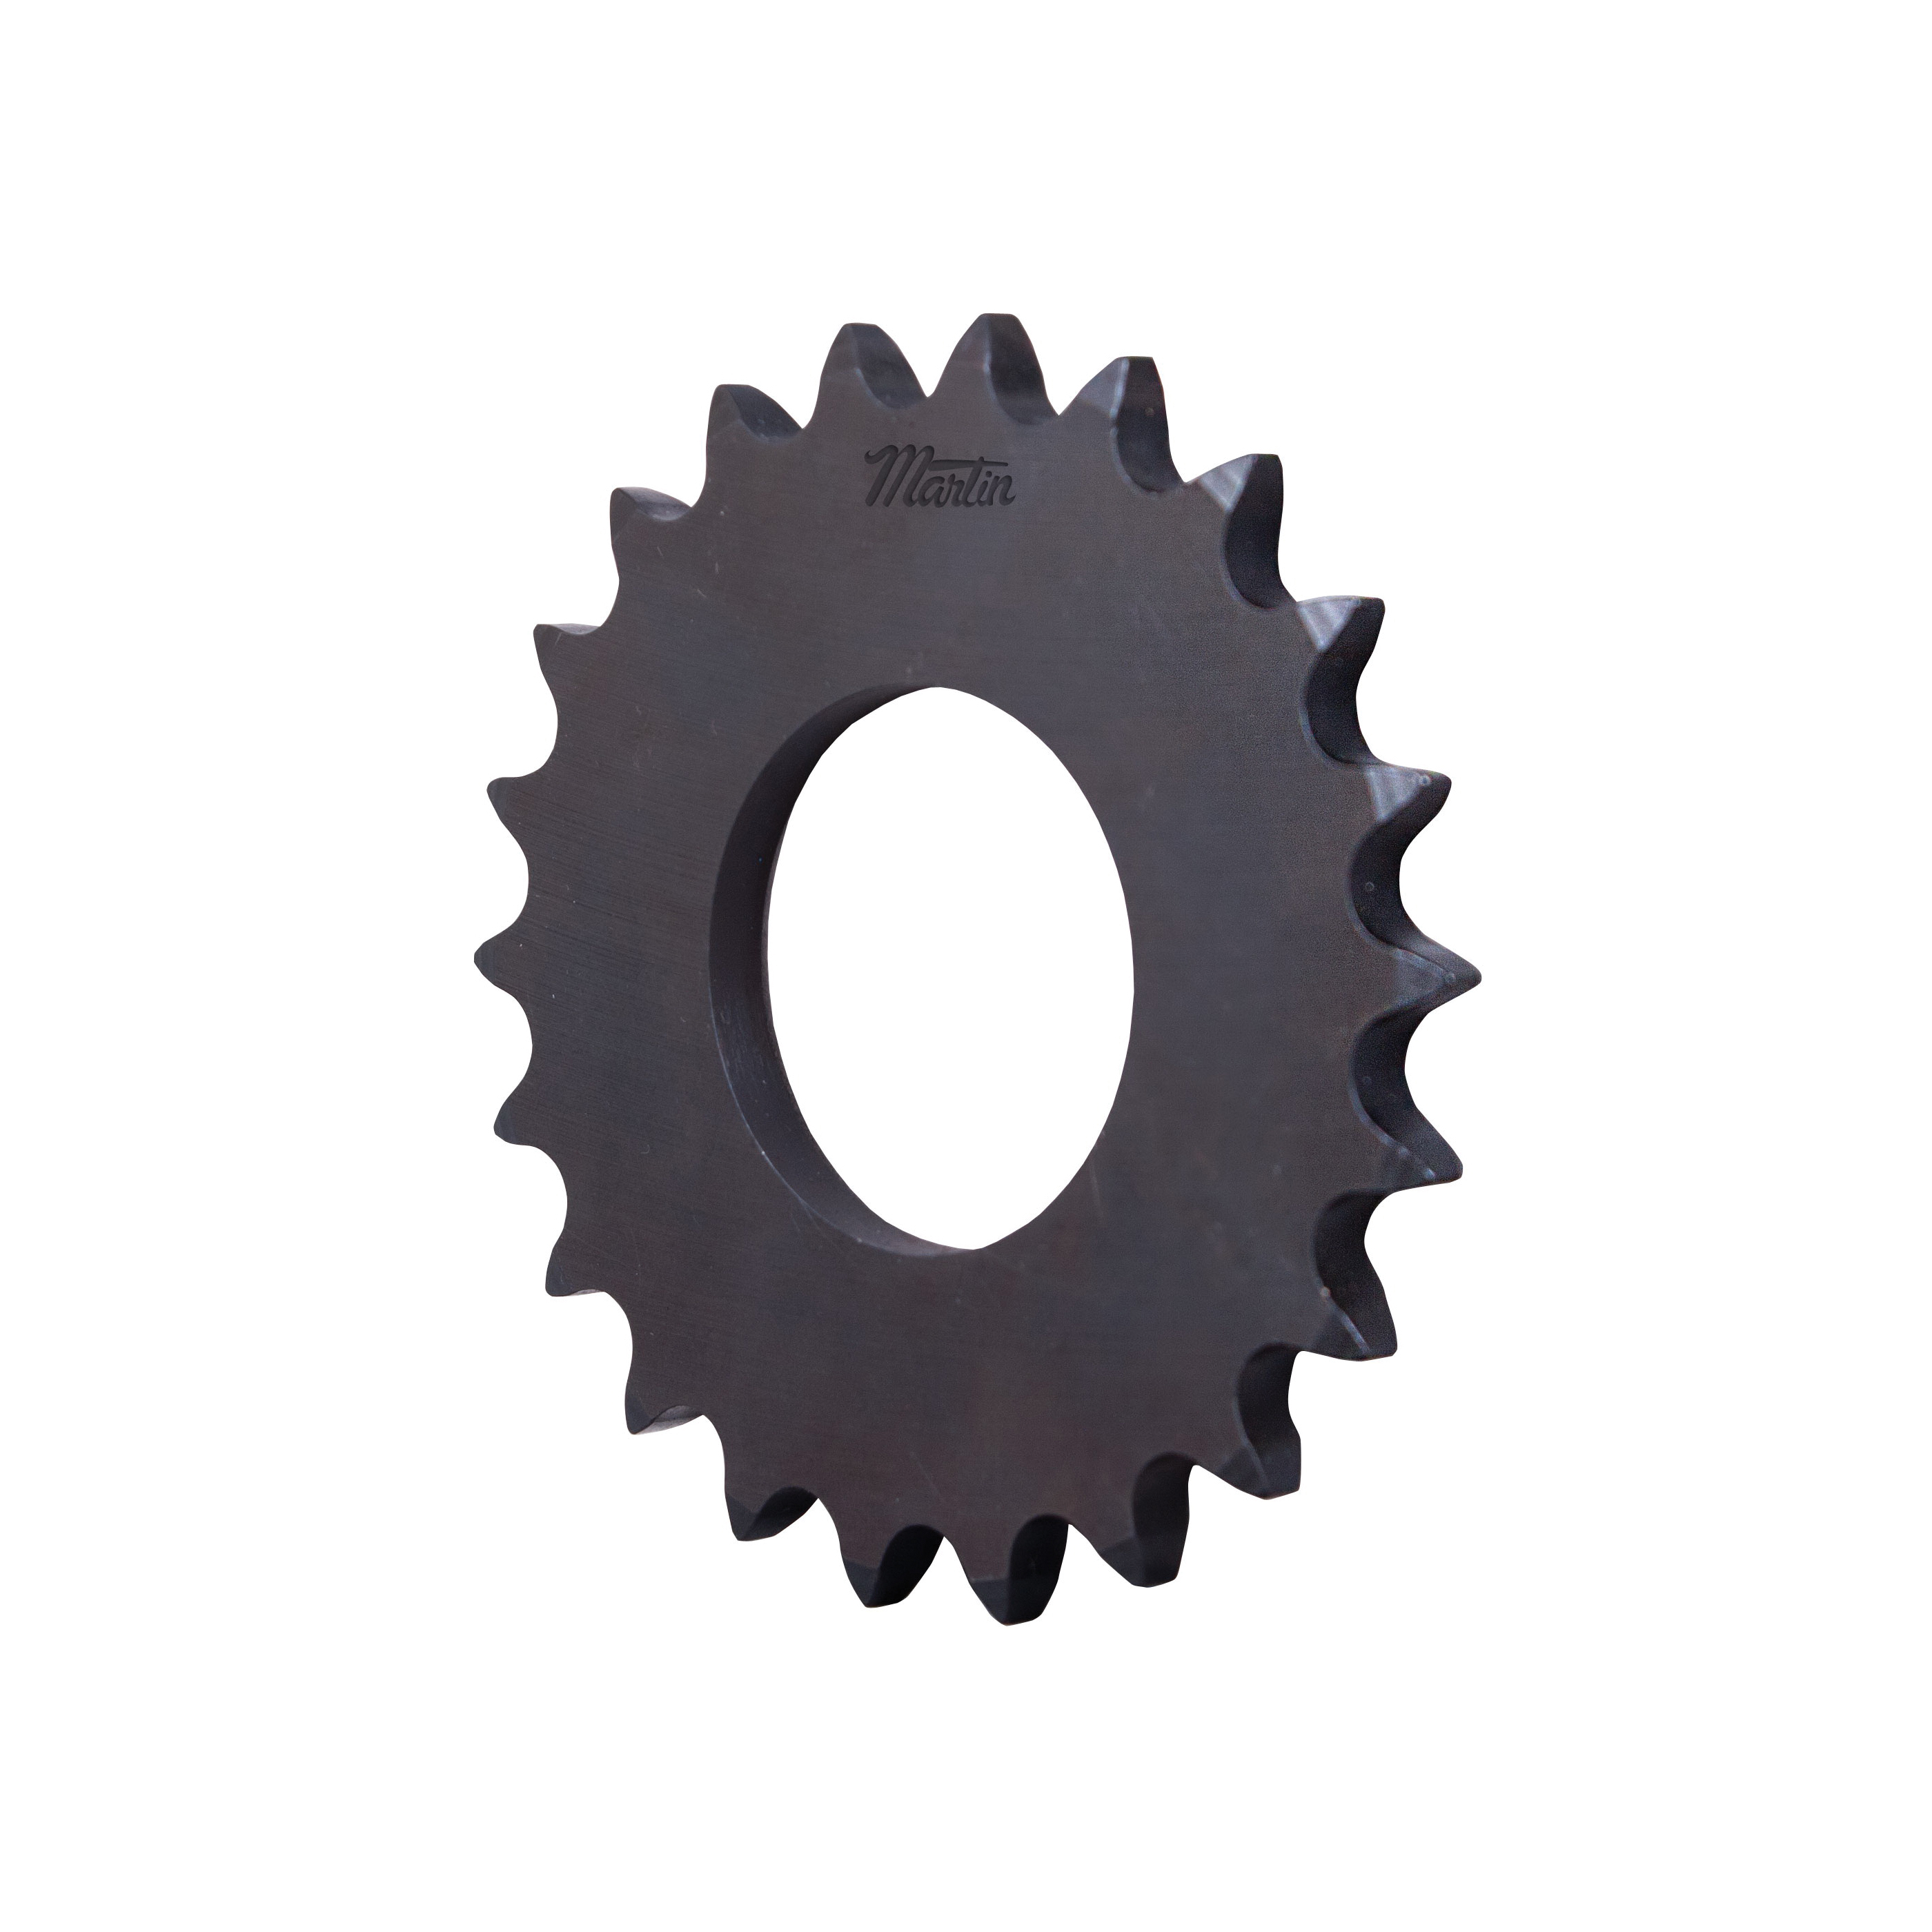 Martin 50TTA22-25 Type A Stock Plate Roller Sprocket With